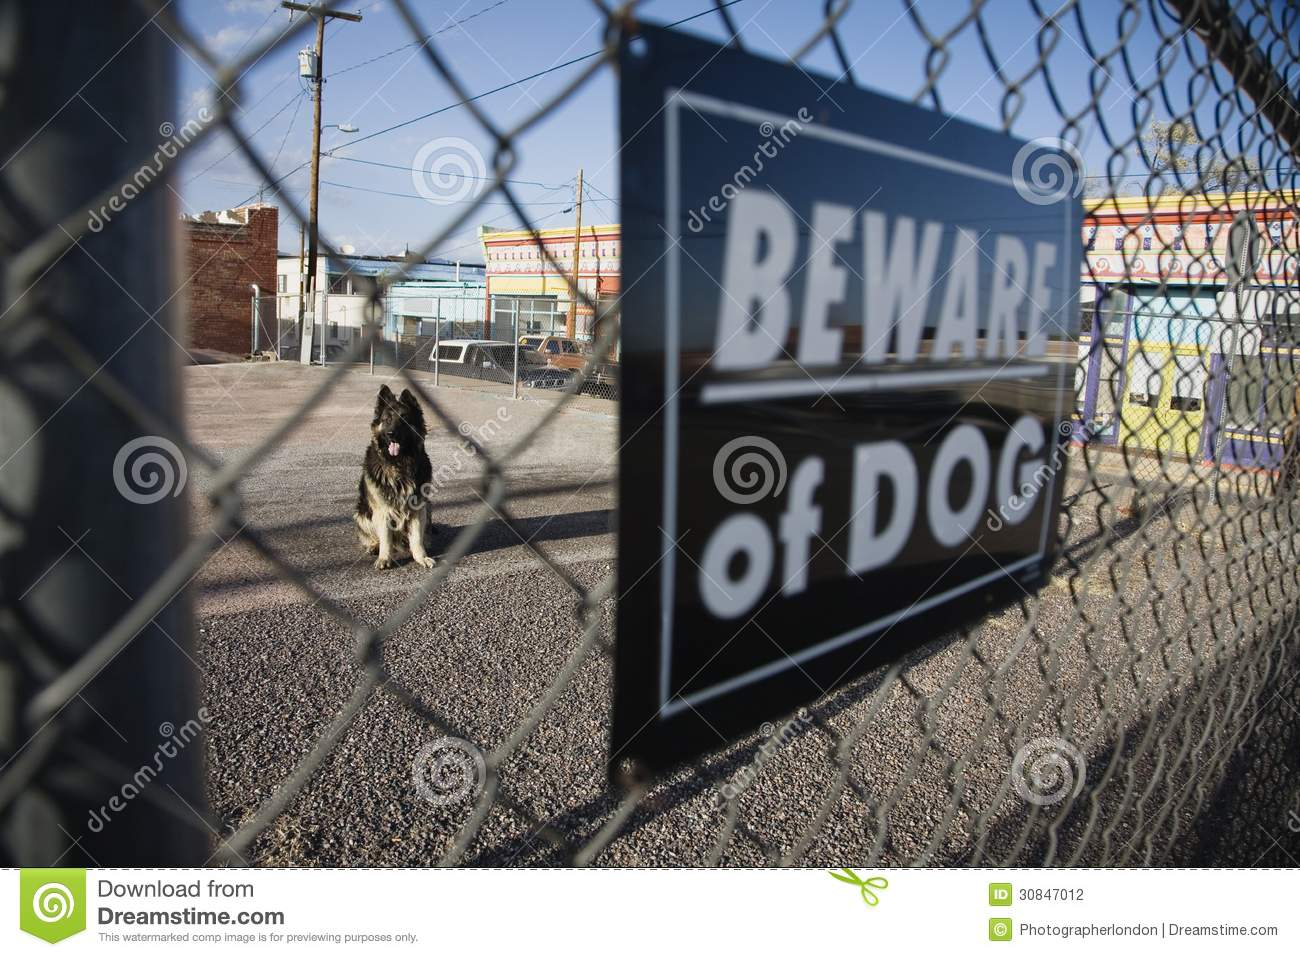 Guard dog behind  Beware of dog  sign on fence